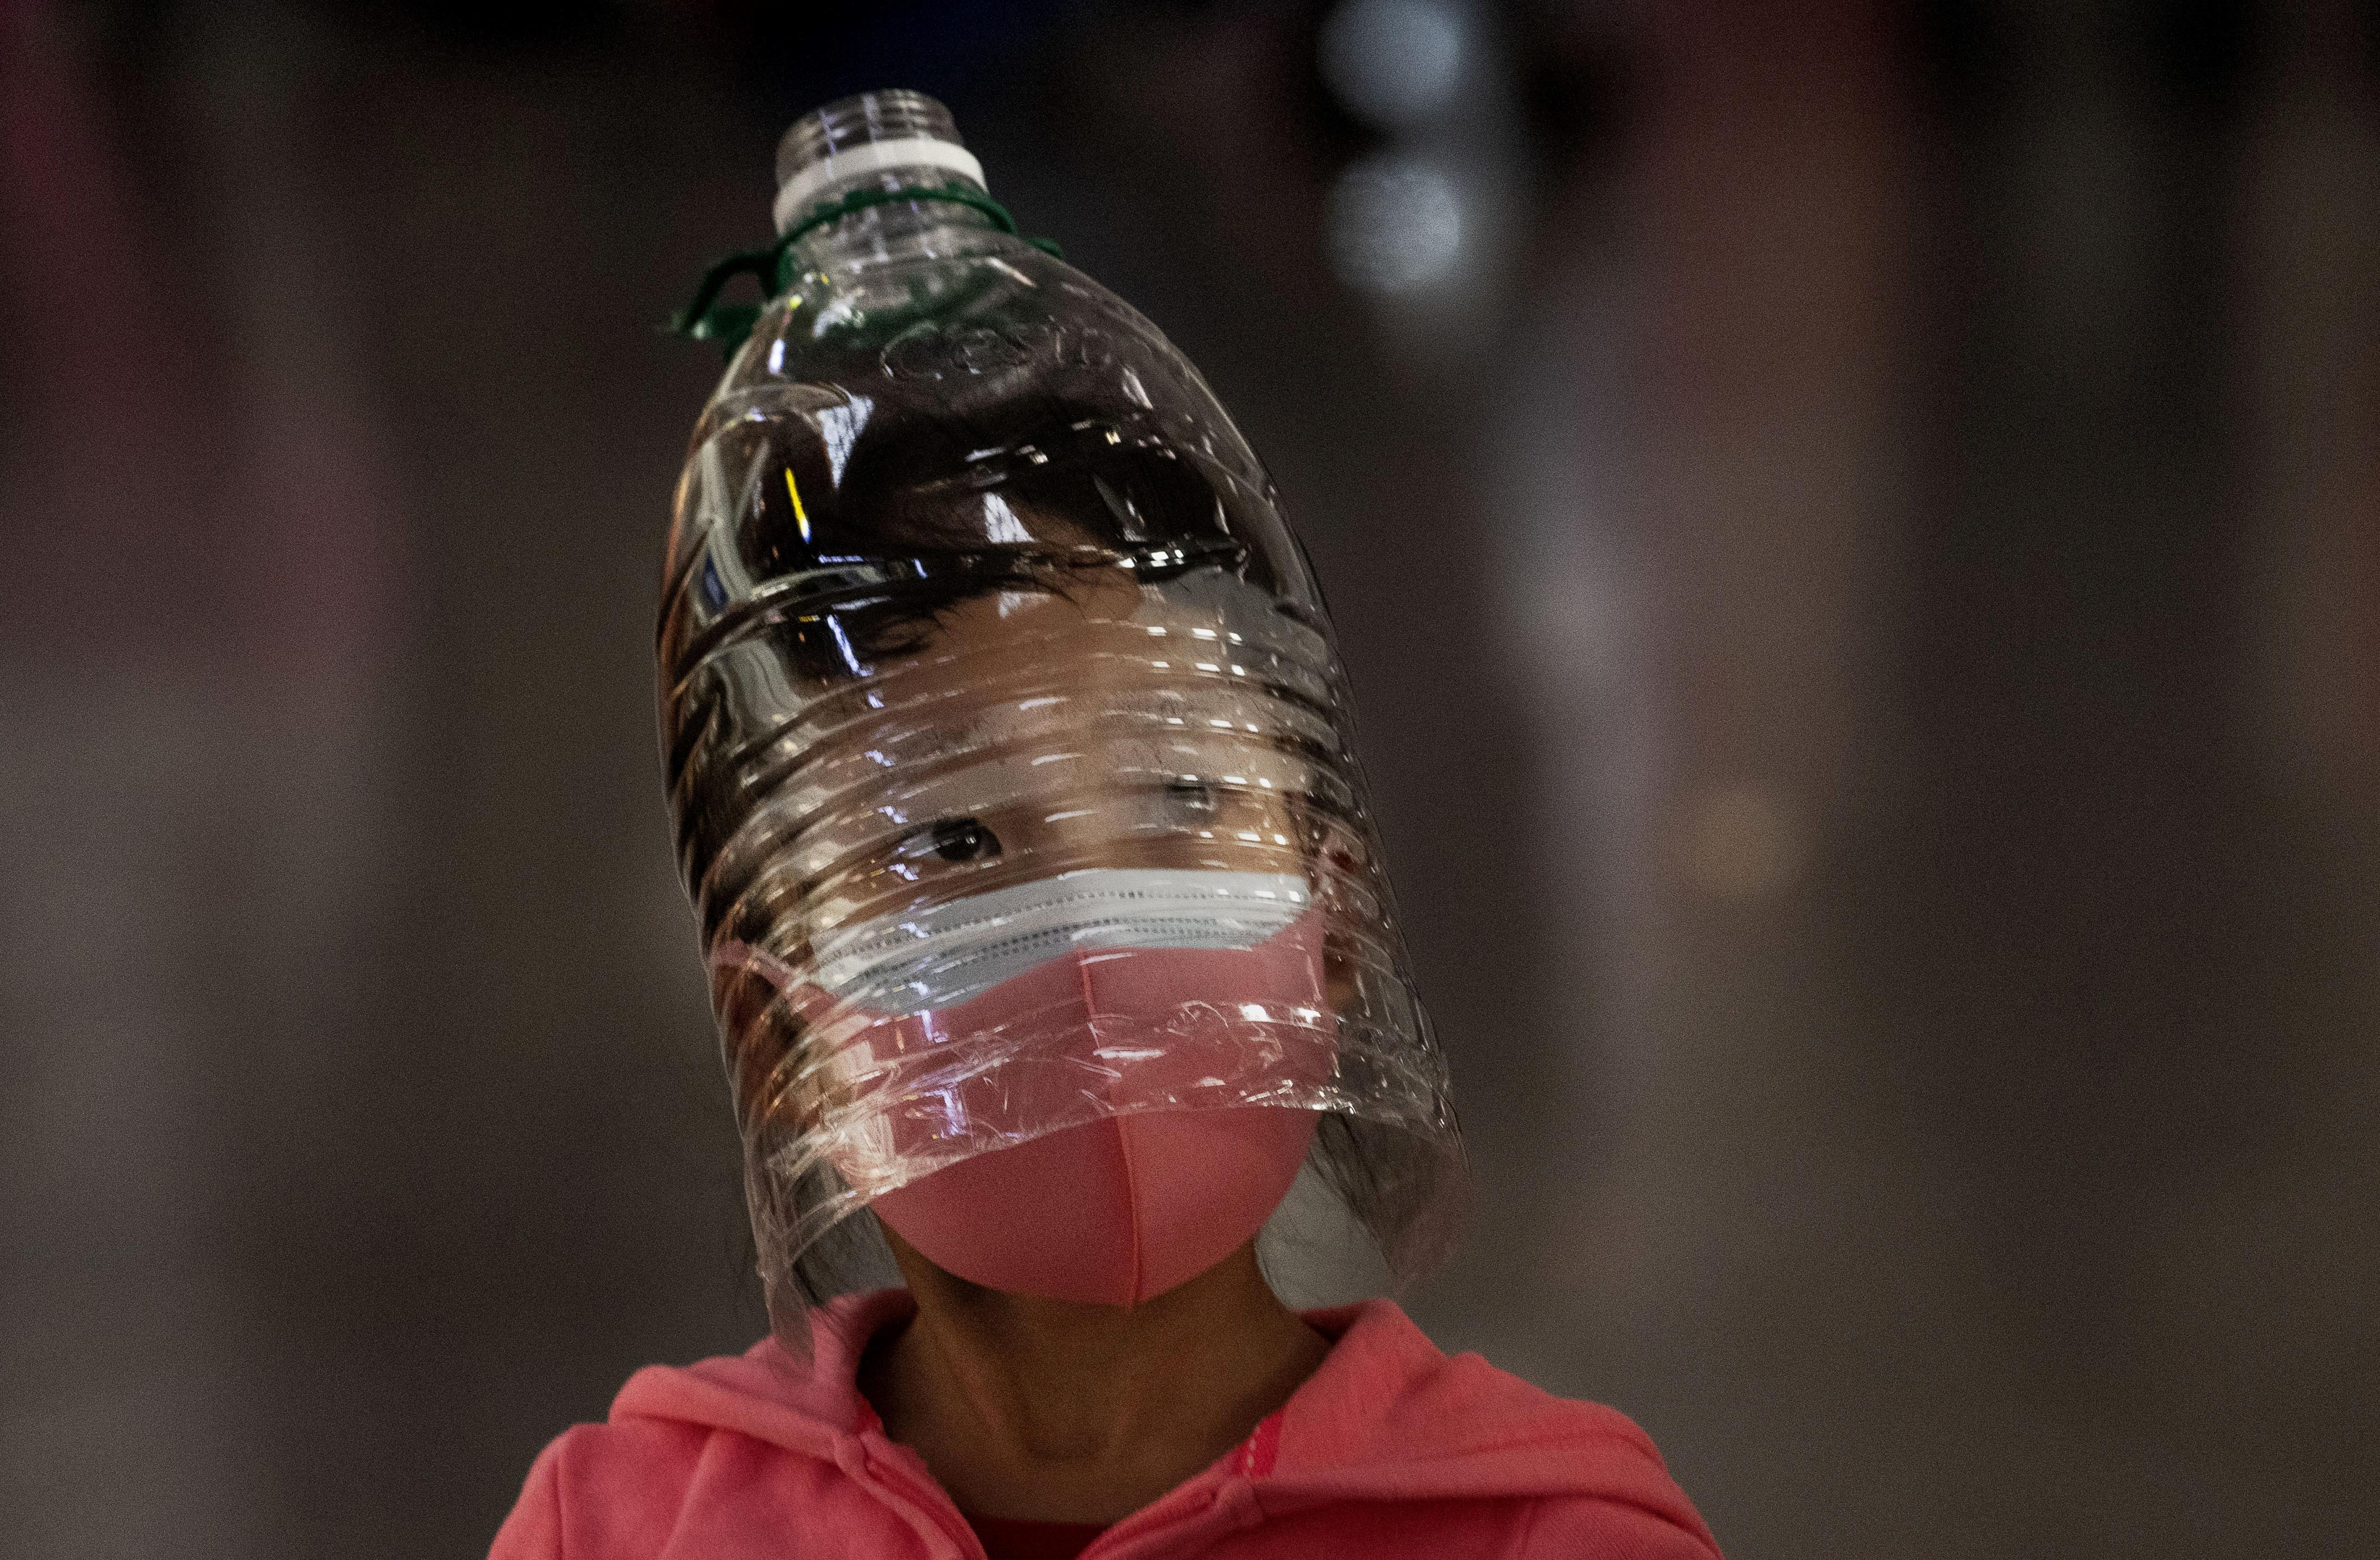 Slide 109 of 113: A Chinese girl wears a plastic bottle as makeshift homemade protection and a protective mask while waiting to check in to a flight at Beijing Capital Airport on Jan. 30, 2020 in Beijing, China. The number of cases of a deadly new coronavirus rose to over 7000 in mainland China Thursday as the country continued to lock down the city of Wuhan in an effort to contain the spread of the pneumonia-like disease which medicals experts have confirmed can be passed from human to human. In an unprecedented move, Chinese authorities put travel restrictions on the city which is the epicenter of the virus and neighboring municipalities affecting tens of millions of people. The number of those who have died from the virus in China climbed to over 170 on Thursday, mostly in Hubei province, and cases have been reported in other countries including the United States, Canada, Australia, Japan, South Korea, and France. The World Health Organization has warned all governments to be on alert, and its emergency committee is to meet later on Thursday to decide whether to declare a global health emergency.